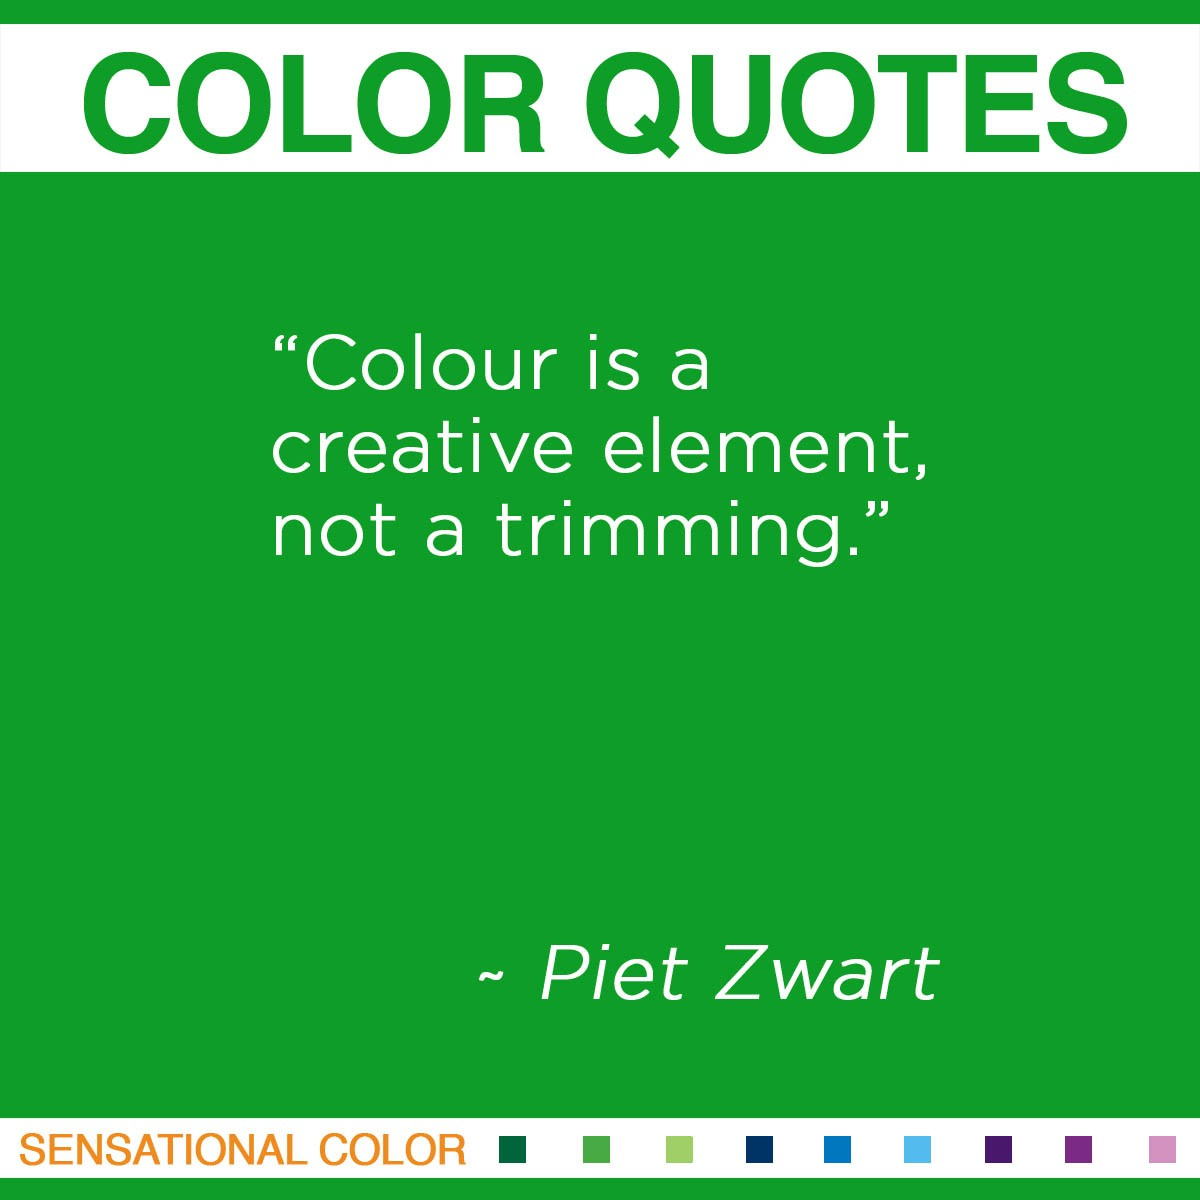 """Colour is a creative element, not a trimming."" - Piet Zwart"